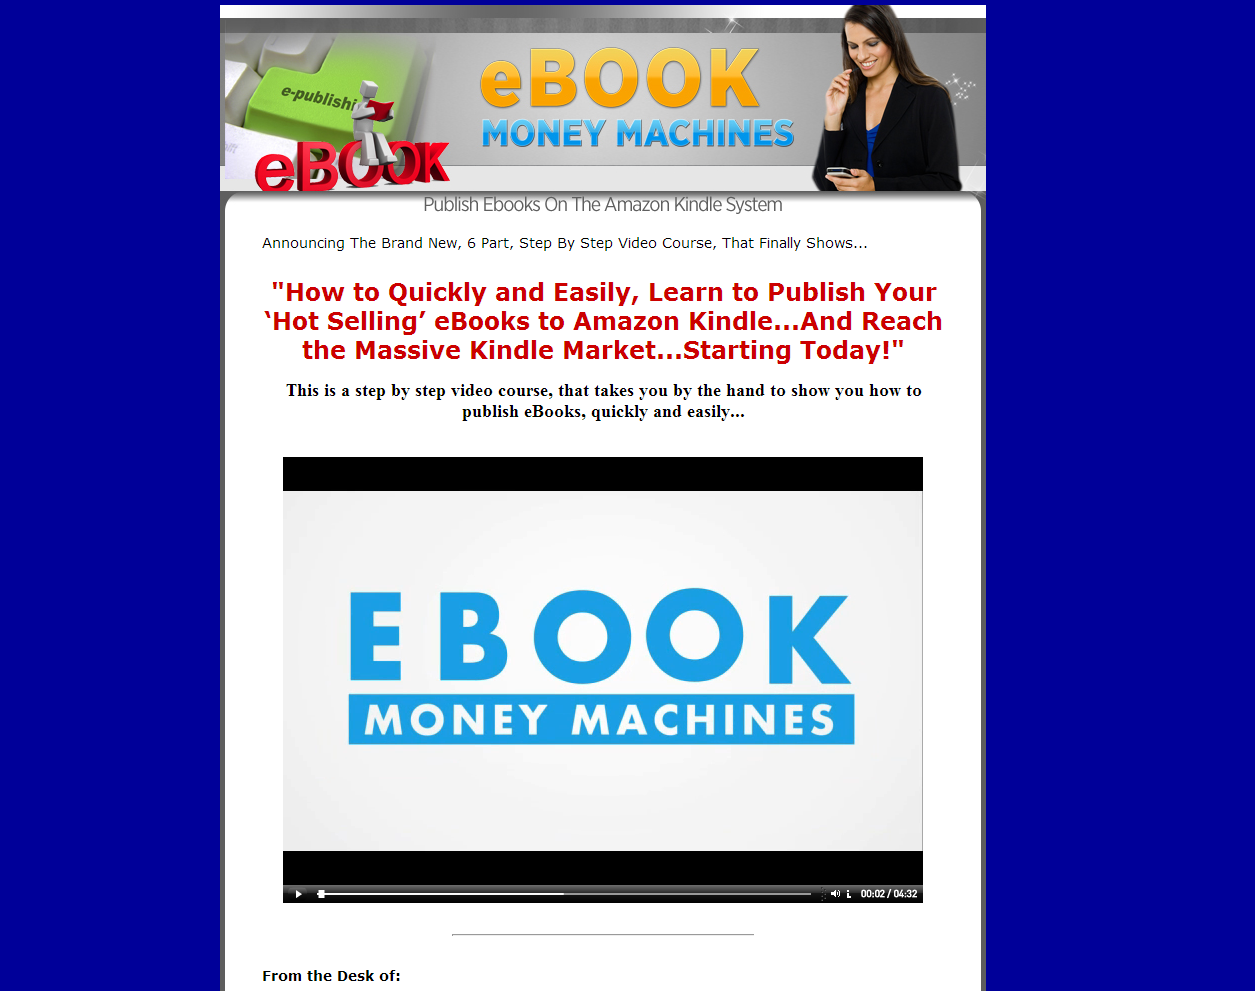 Kindle eBook Money Machines